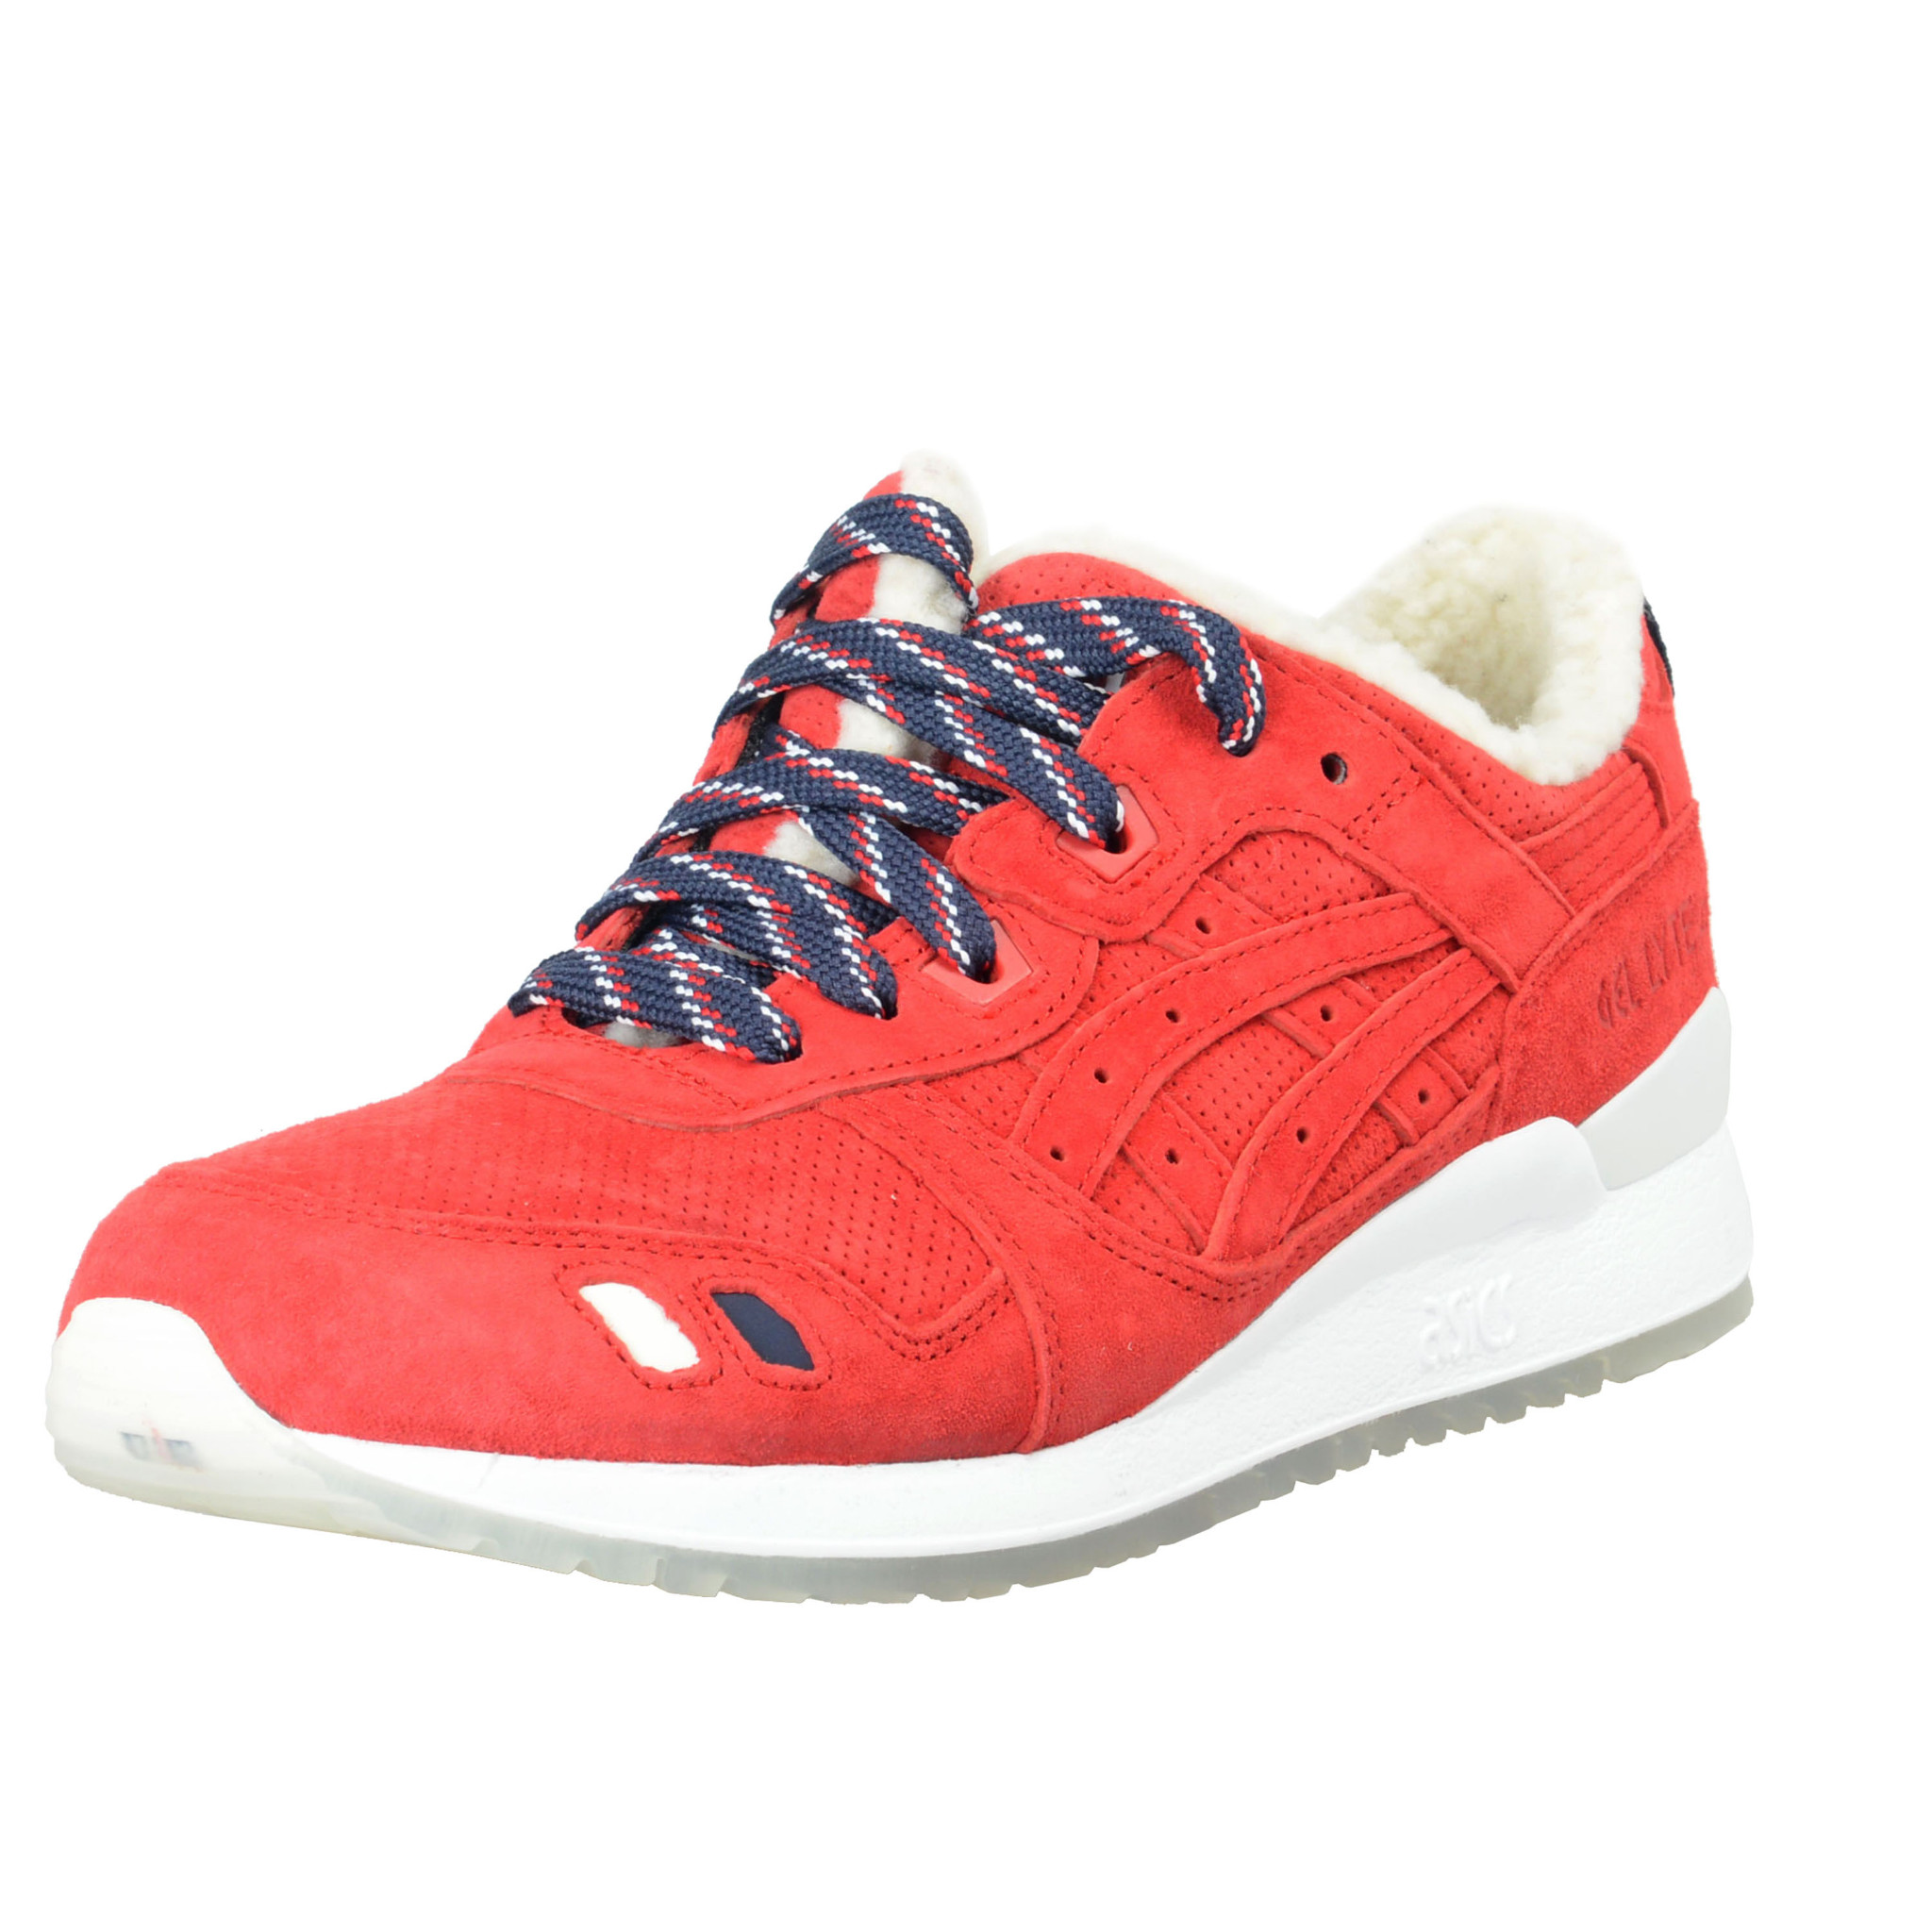 Details about KithX MonclerX Asics Gel Lyte III Suede Leather Fashion Sneakers Shoes 8.5 9.5